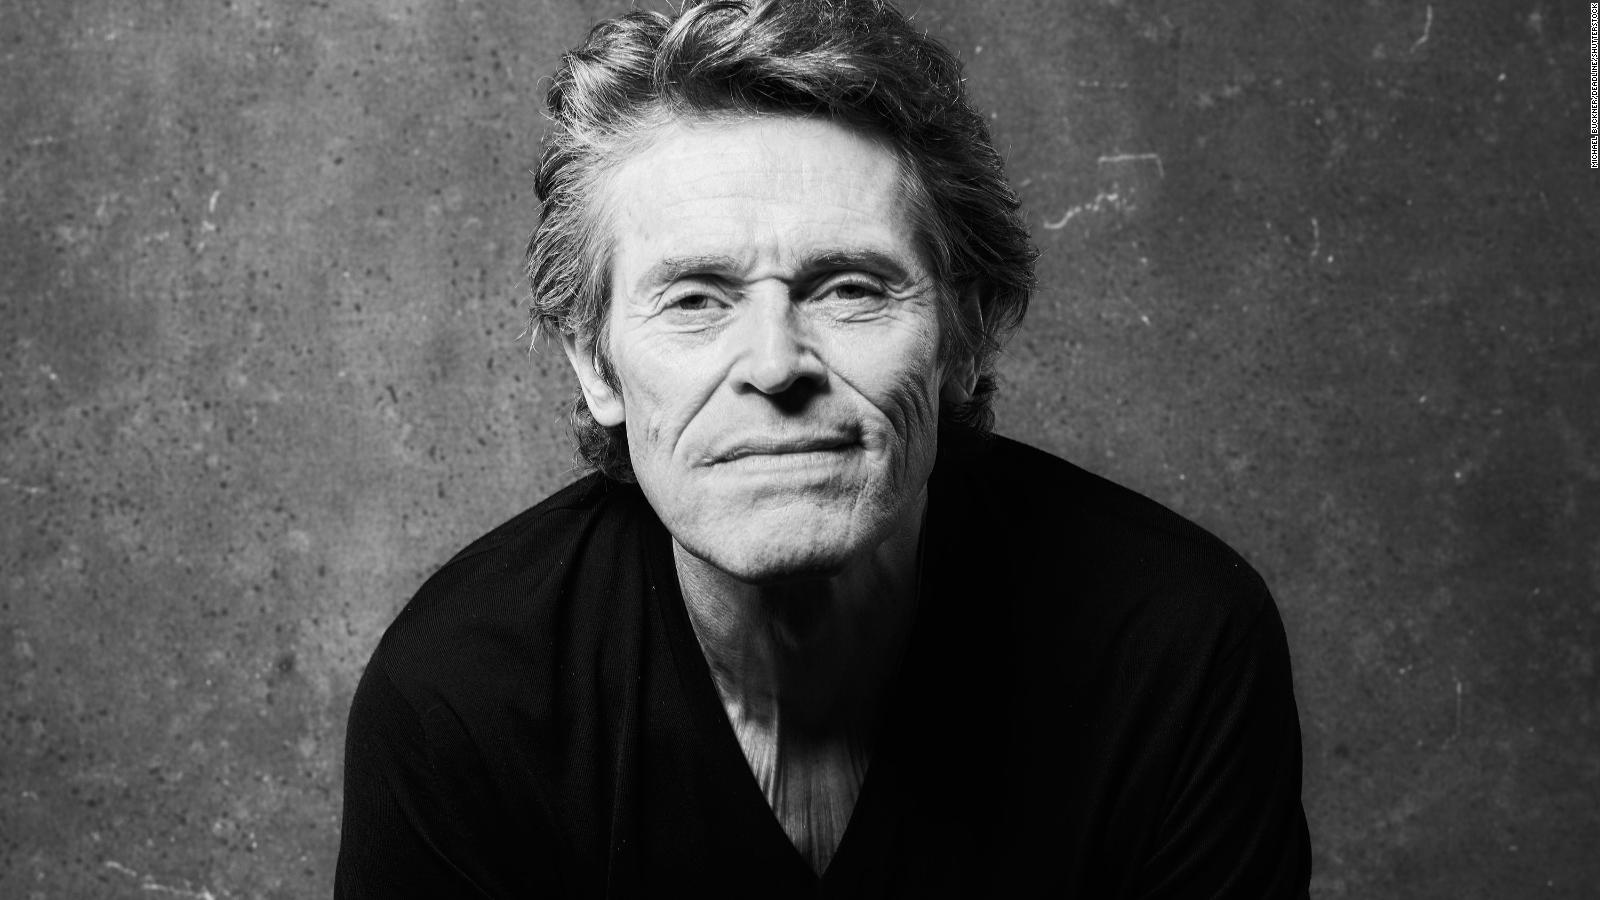 Willem Dafoe Phone number, Email Id, Fanmail, Instagram, Tiktok, and Contact Details